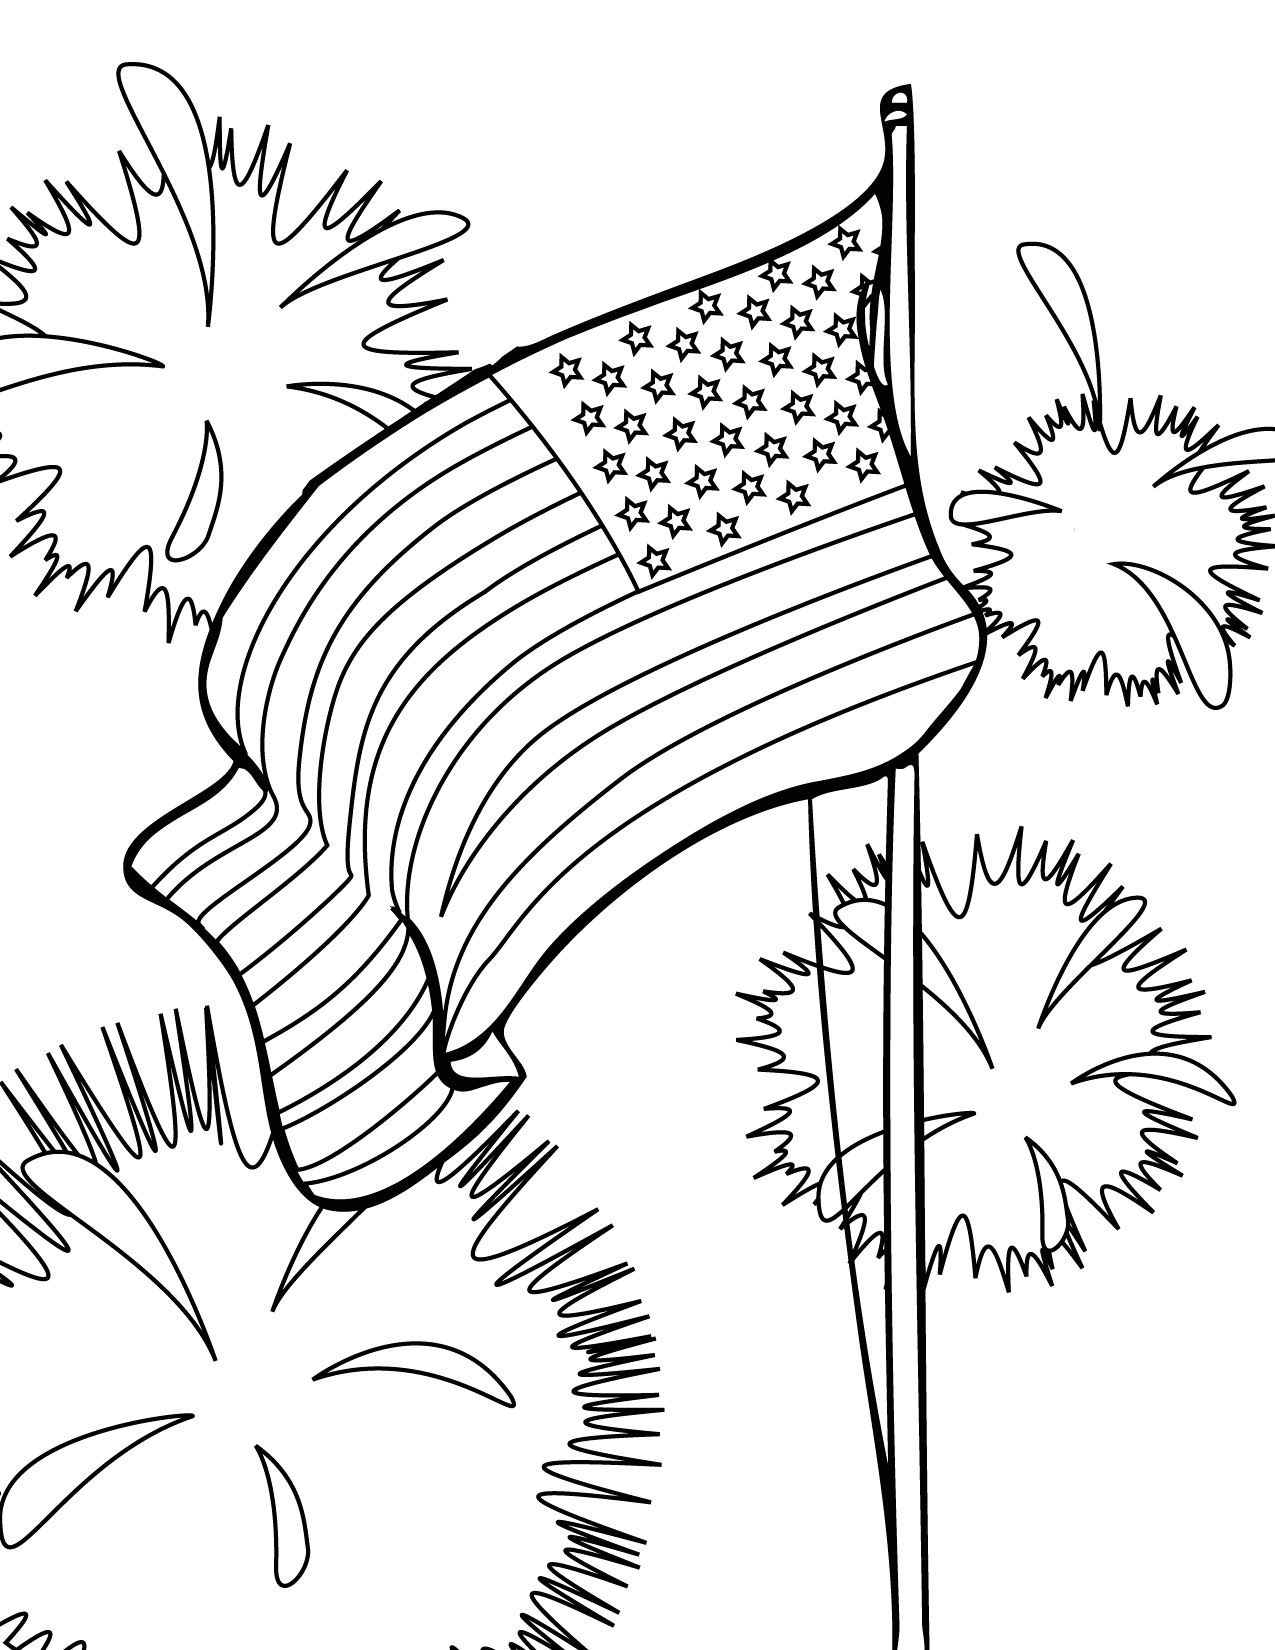 Printable Coloring Pages for the 4th Of July 4th Of July Coloring Pages